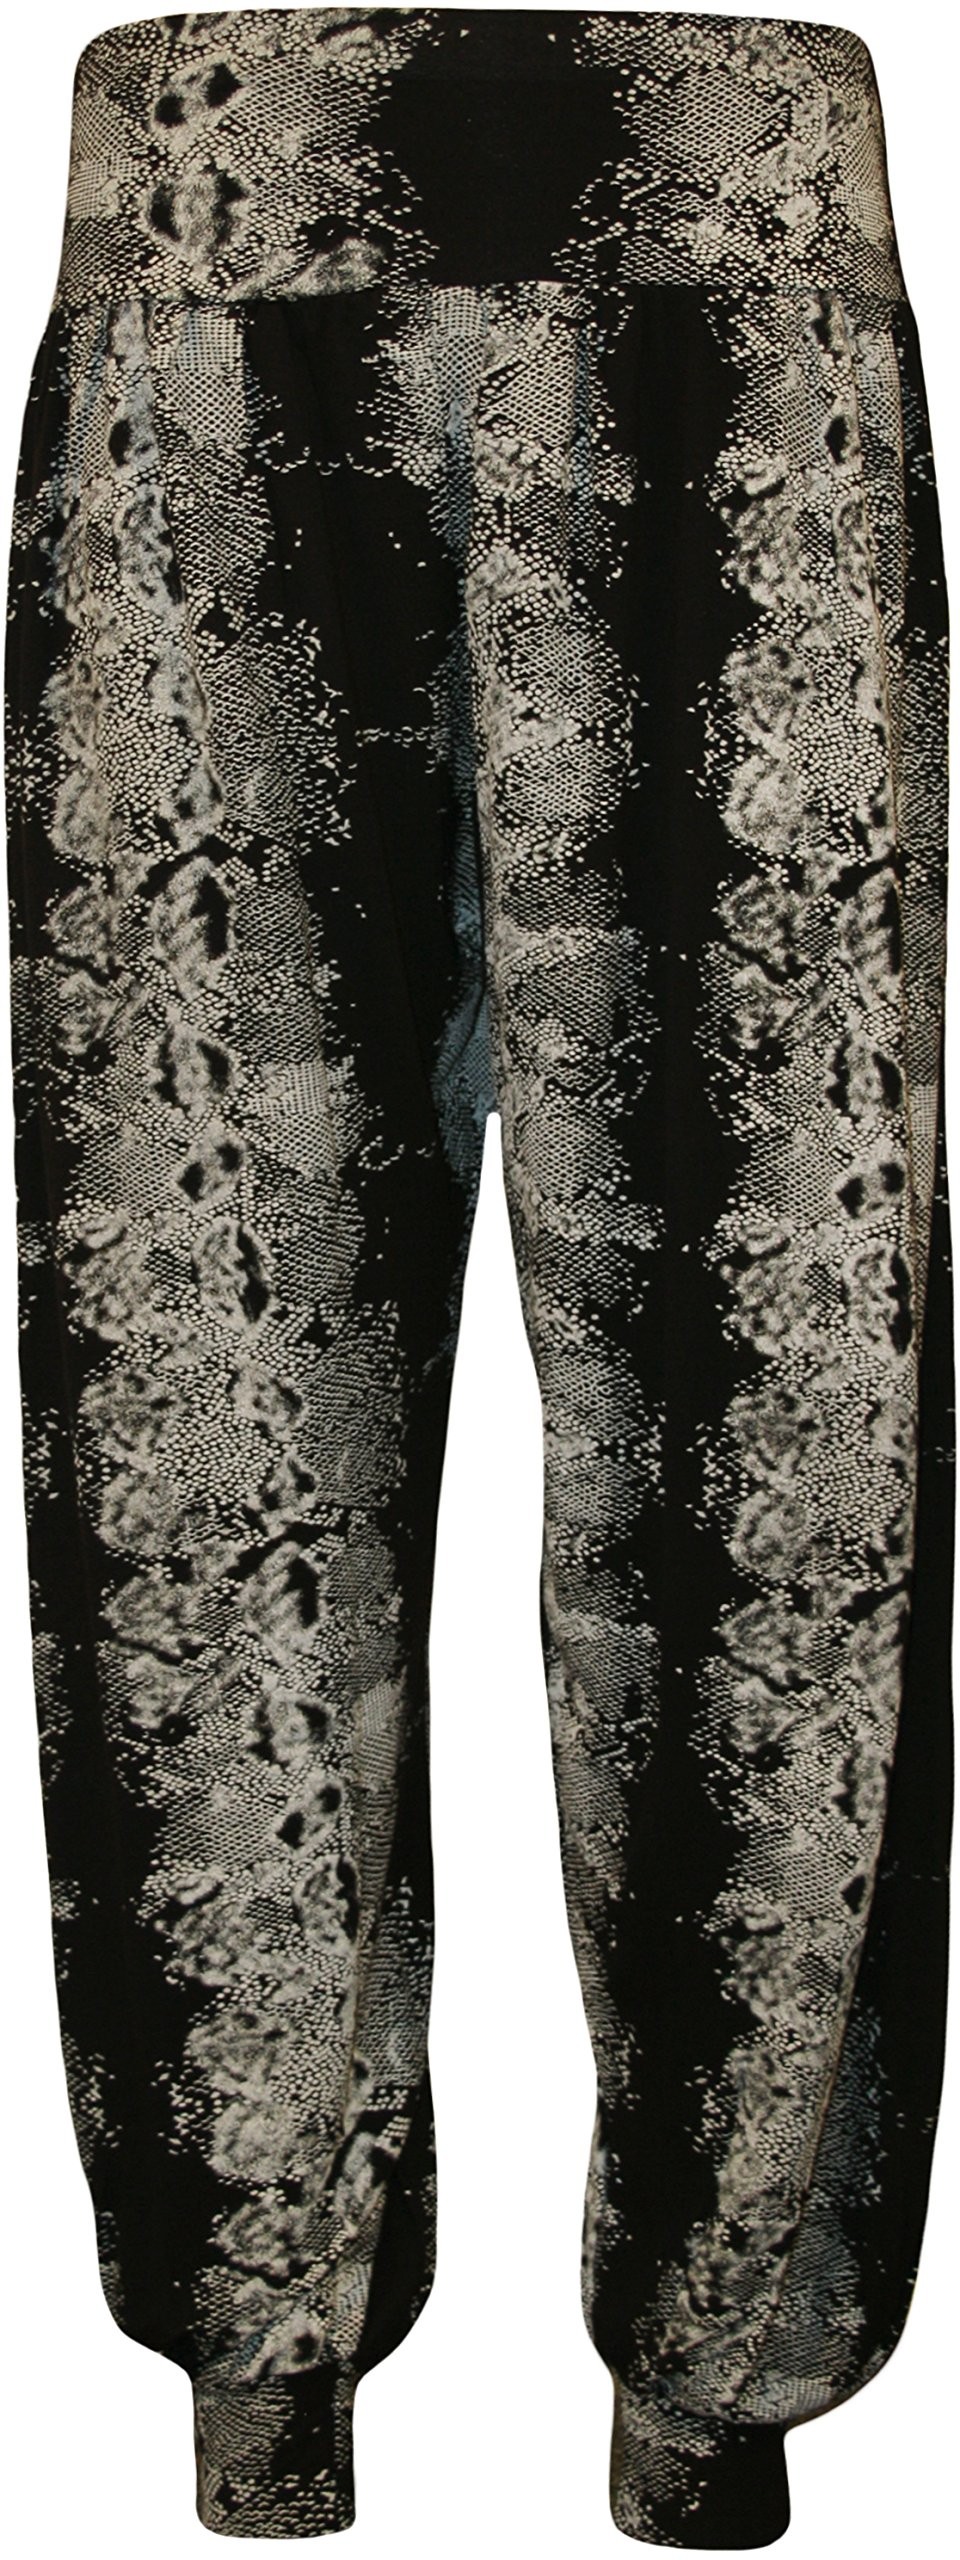 WearAll Women's Snake Animal Print Full Harem Pants - Black - US 20-22 (UK 24-26)